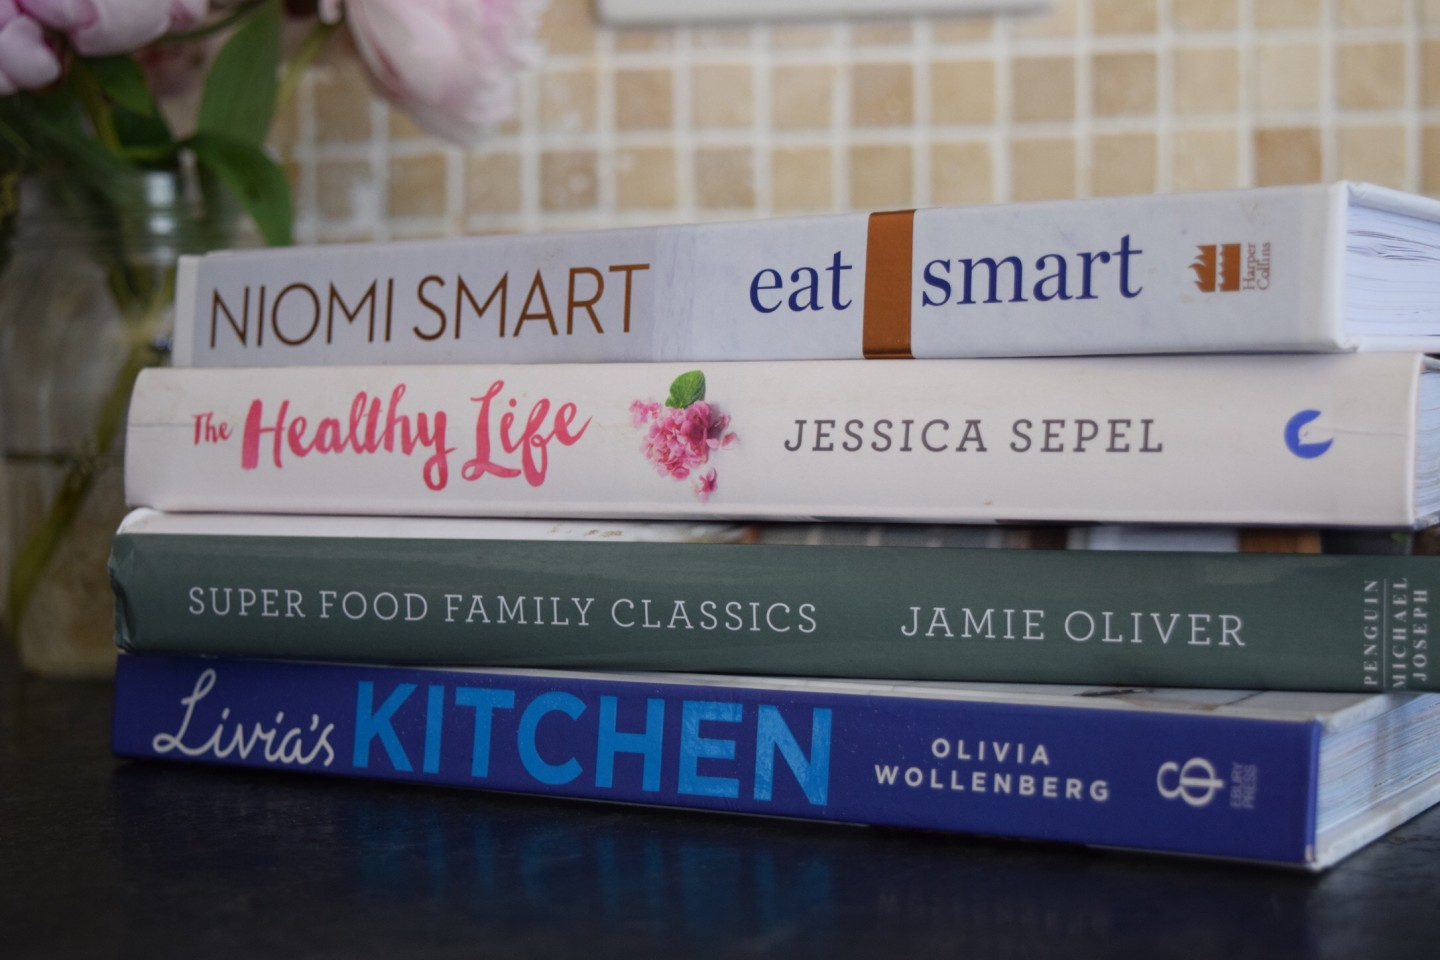 Kitchen Style & Meal Planning: My Top Tips